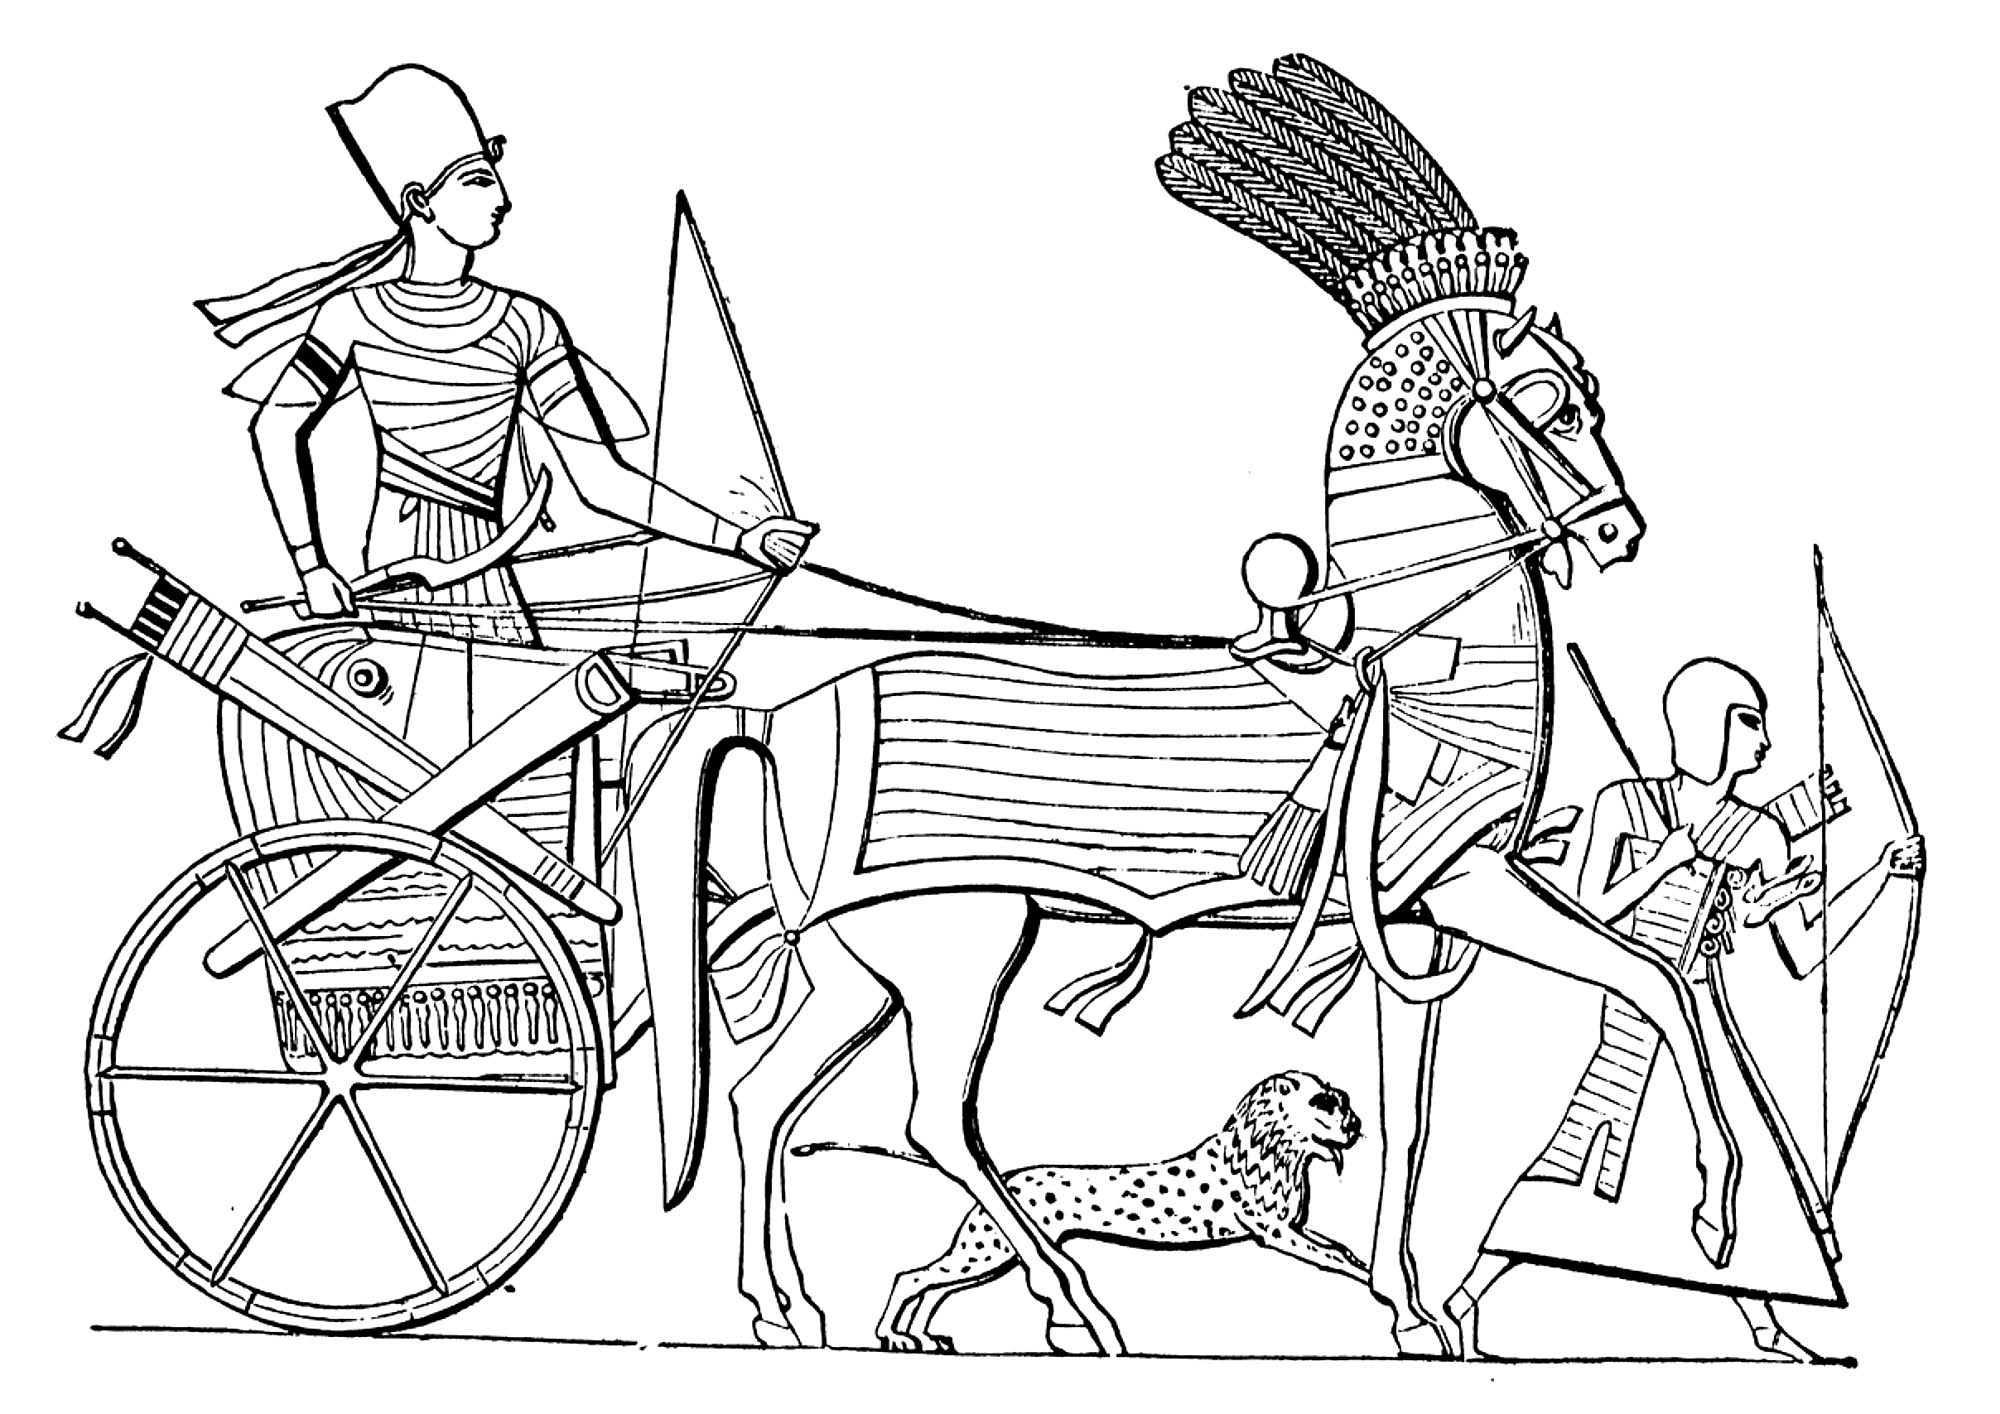 Hieroglyphics Coloring Pages At Getcolorings